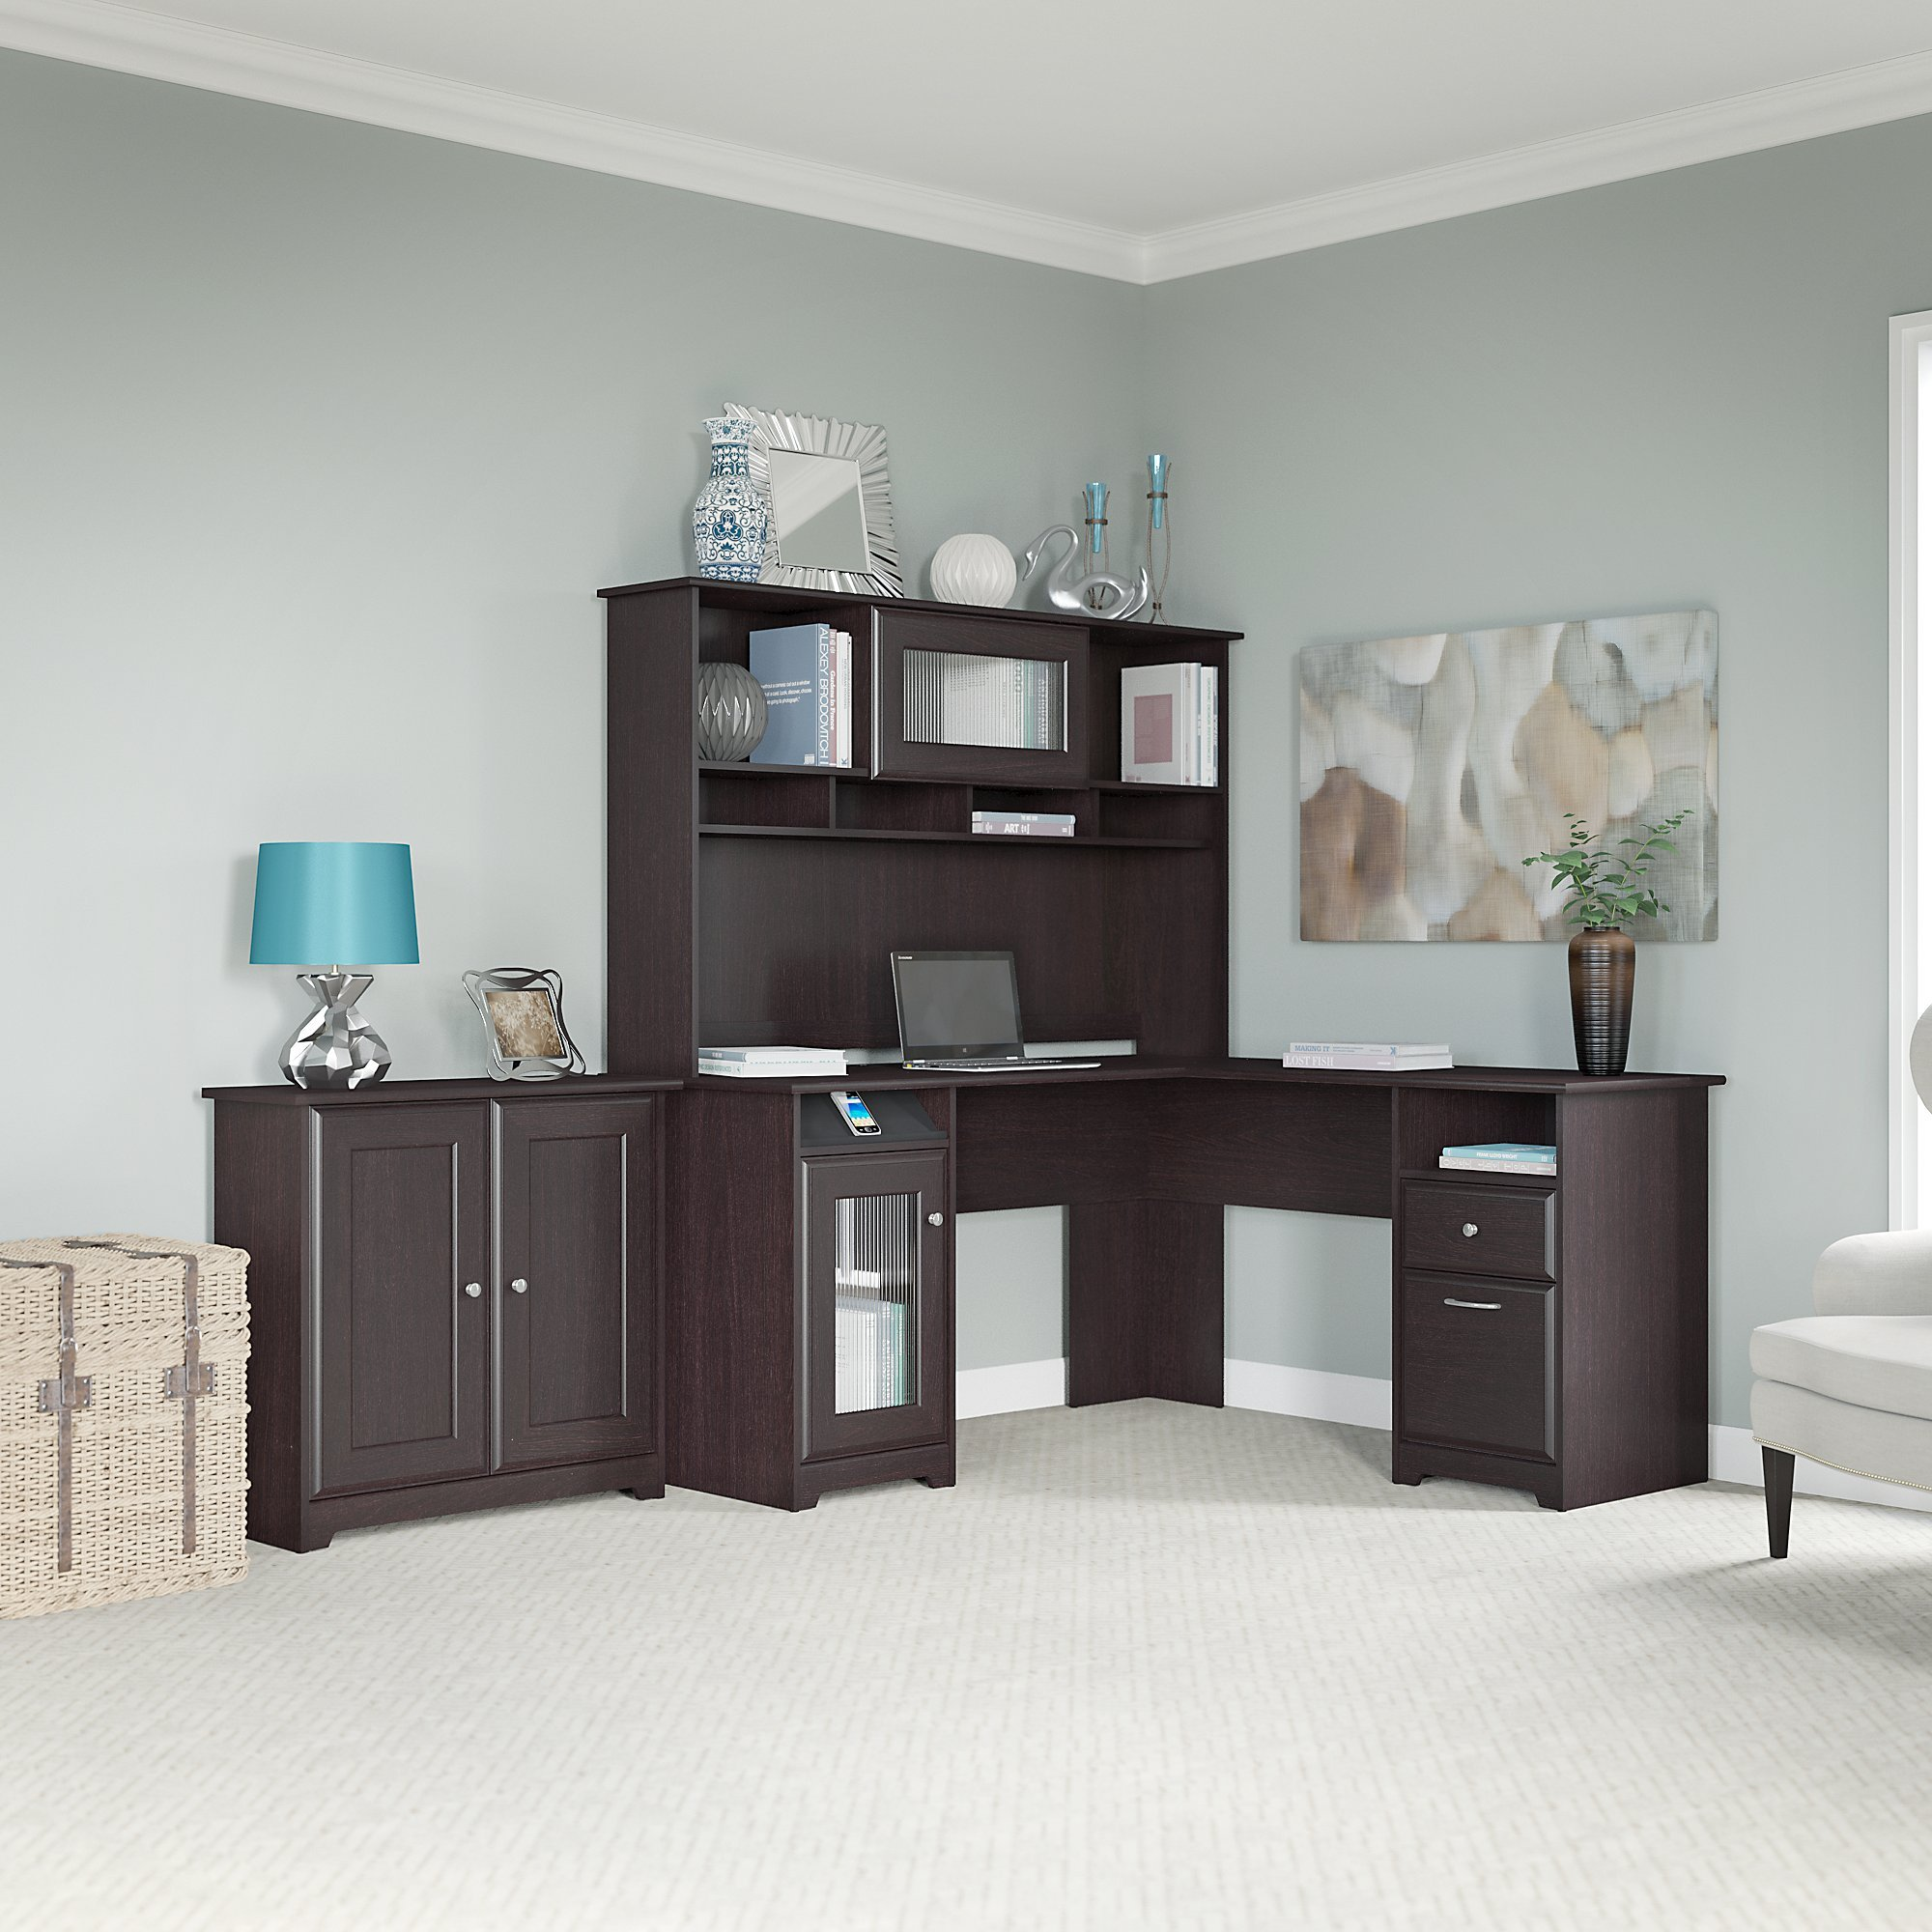 Cabot L Shaped Desk, Hutch, and Low Storage Cabinet with Doors